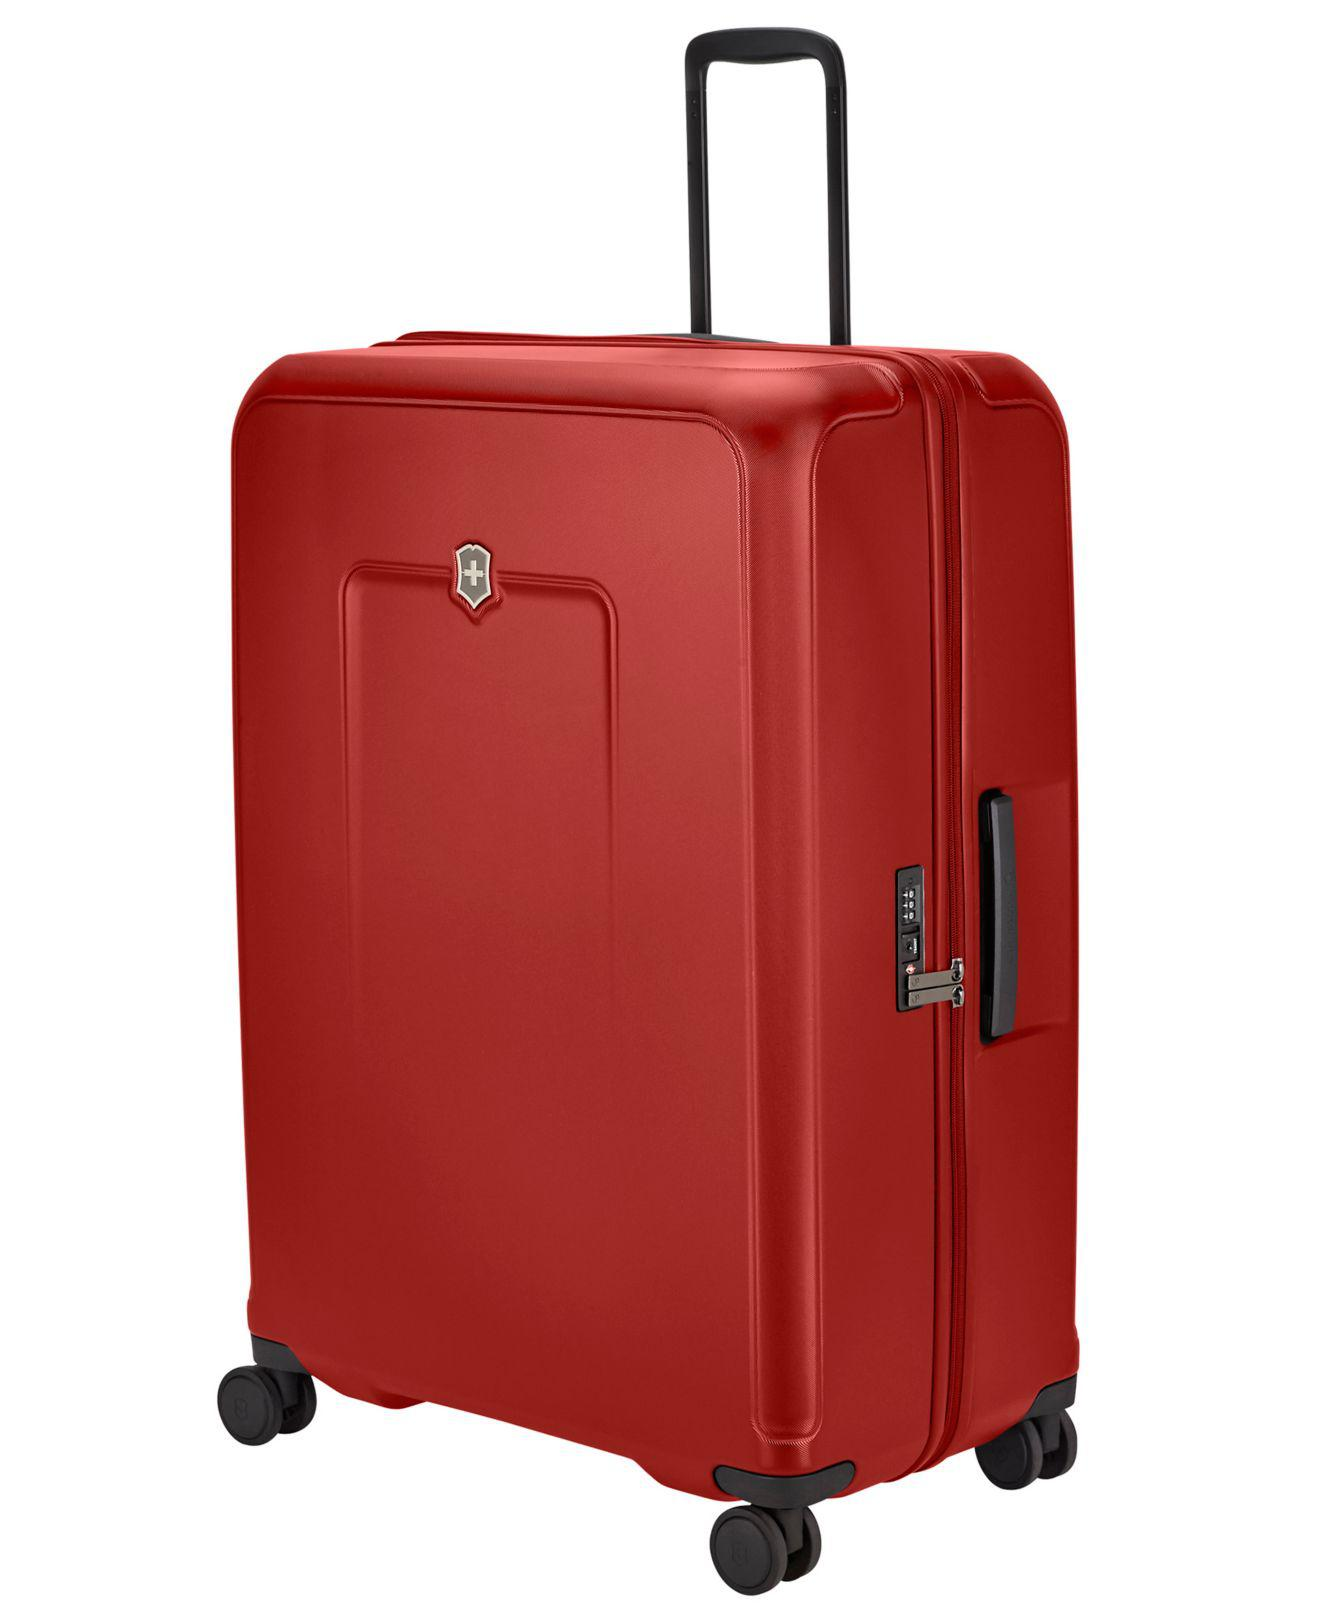 3b73cf80b4 Lyst - Victorinox Nova Extra-large Softside Case in Red for Men